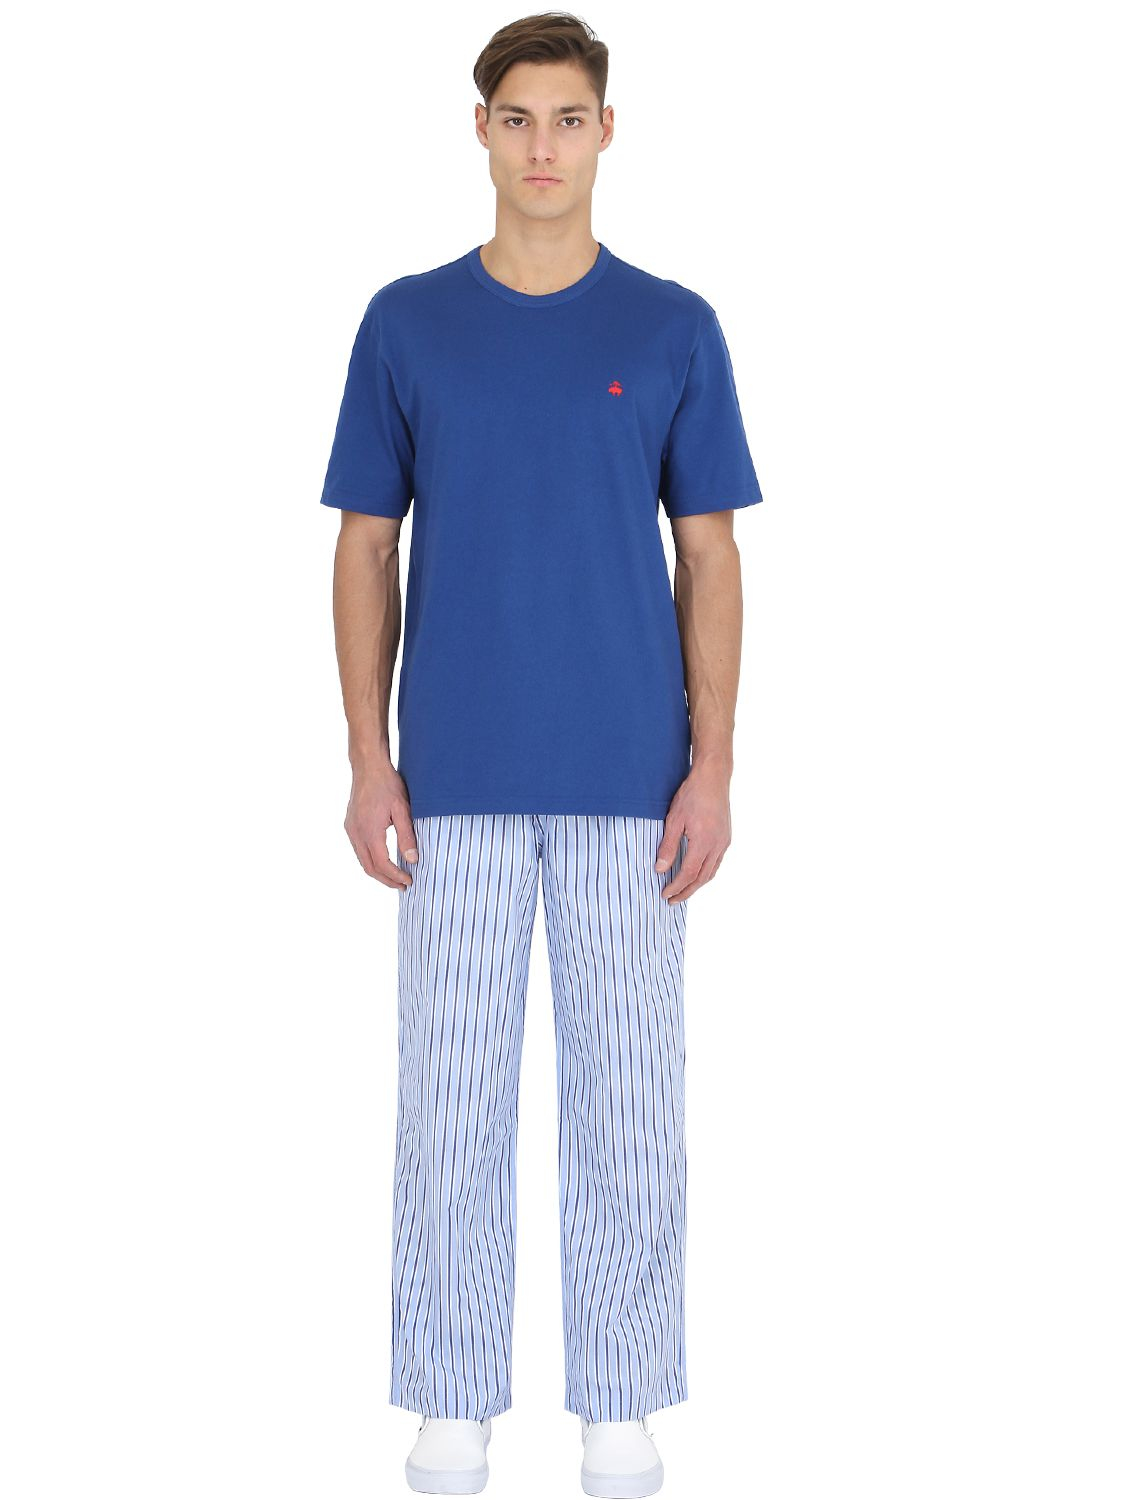 Brooks Brothers Cotton Pajama T Shirt Amp Pants In Blue For